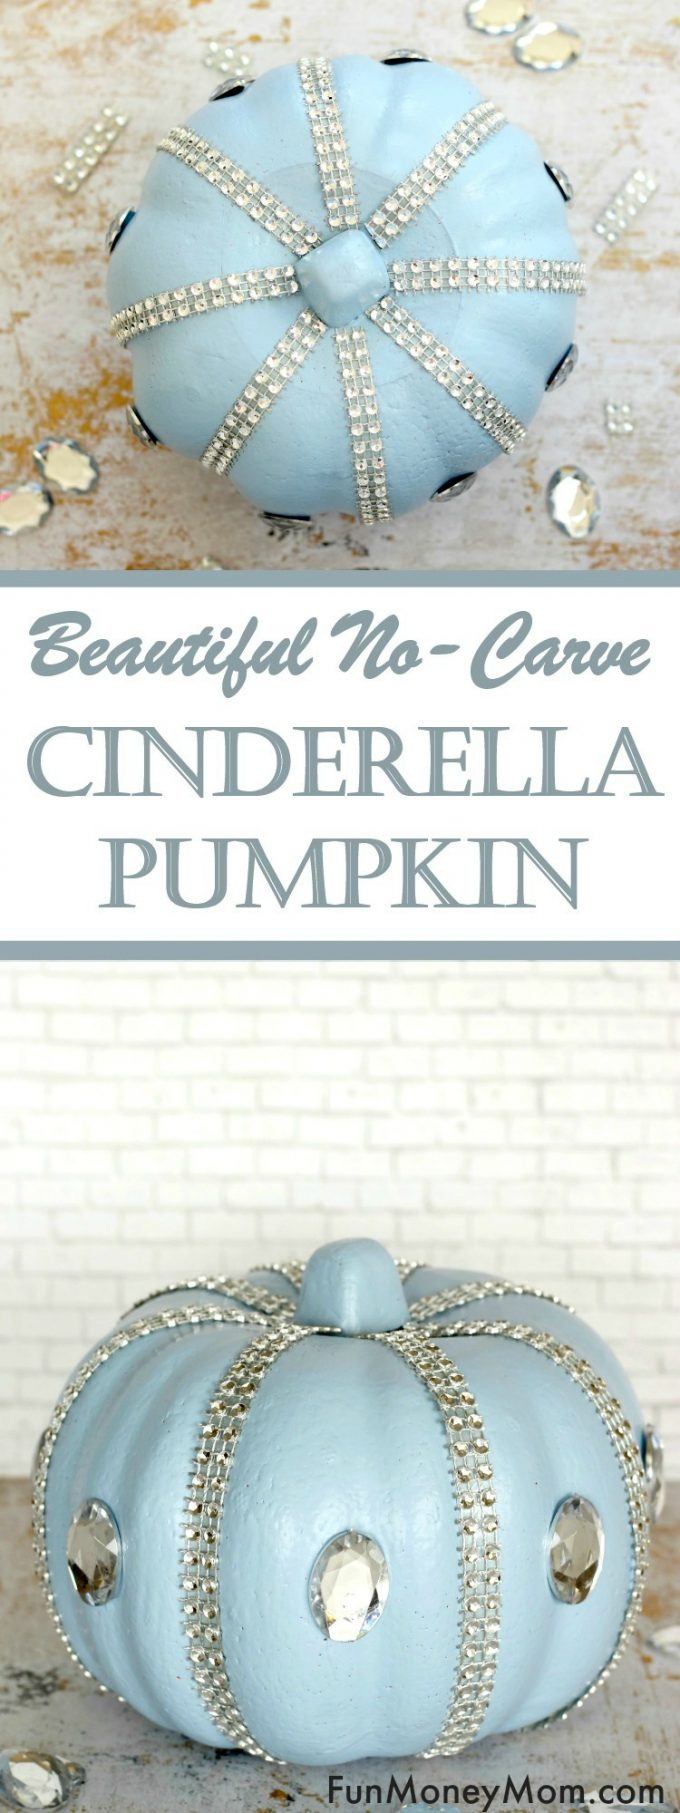 Love making Halloween decorations but want to do something a little different this year? Why not make a Disney inspired no carve Cinderella pumpkin!